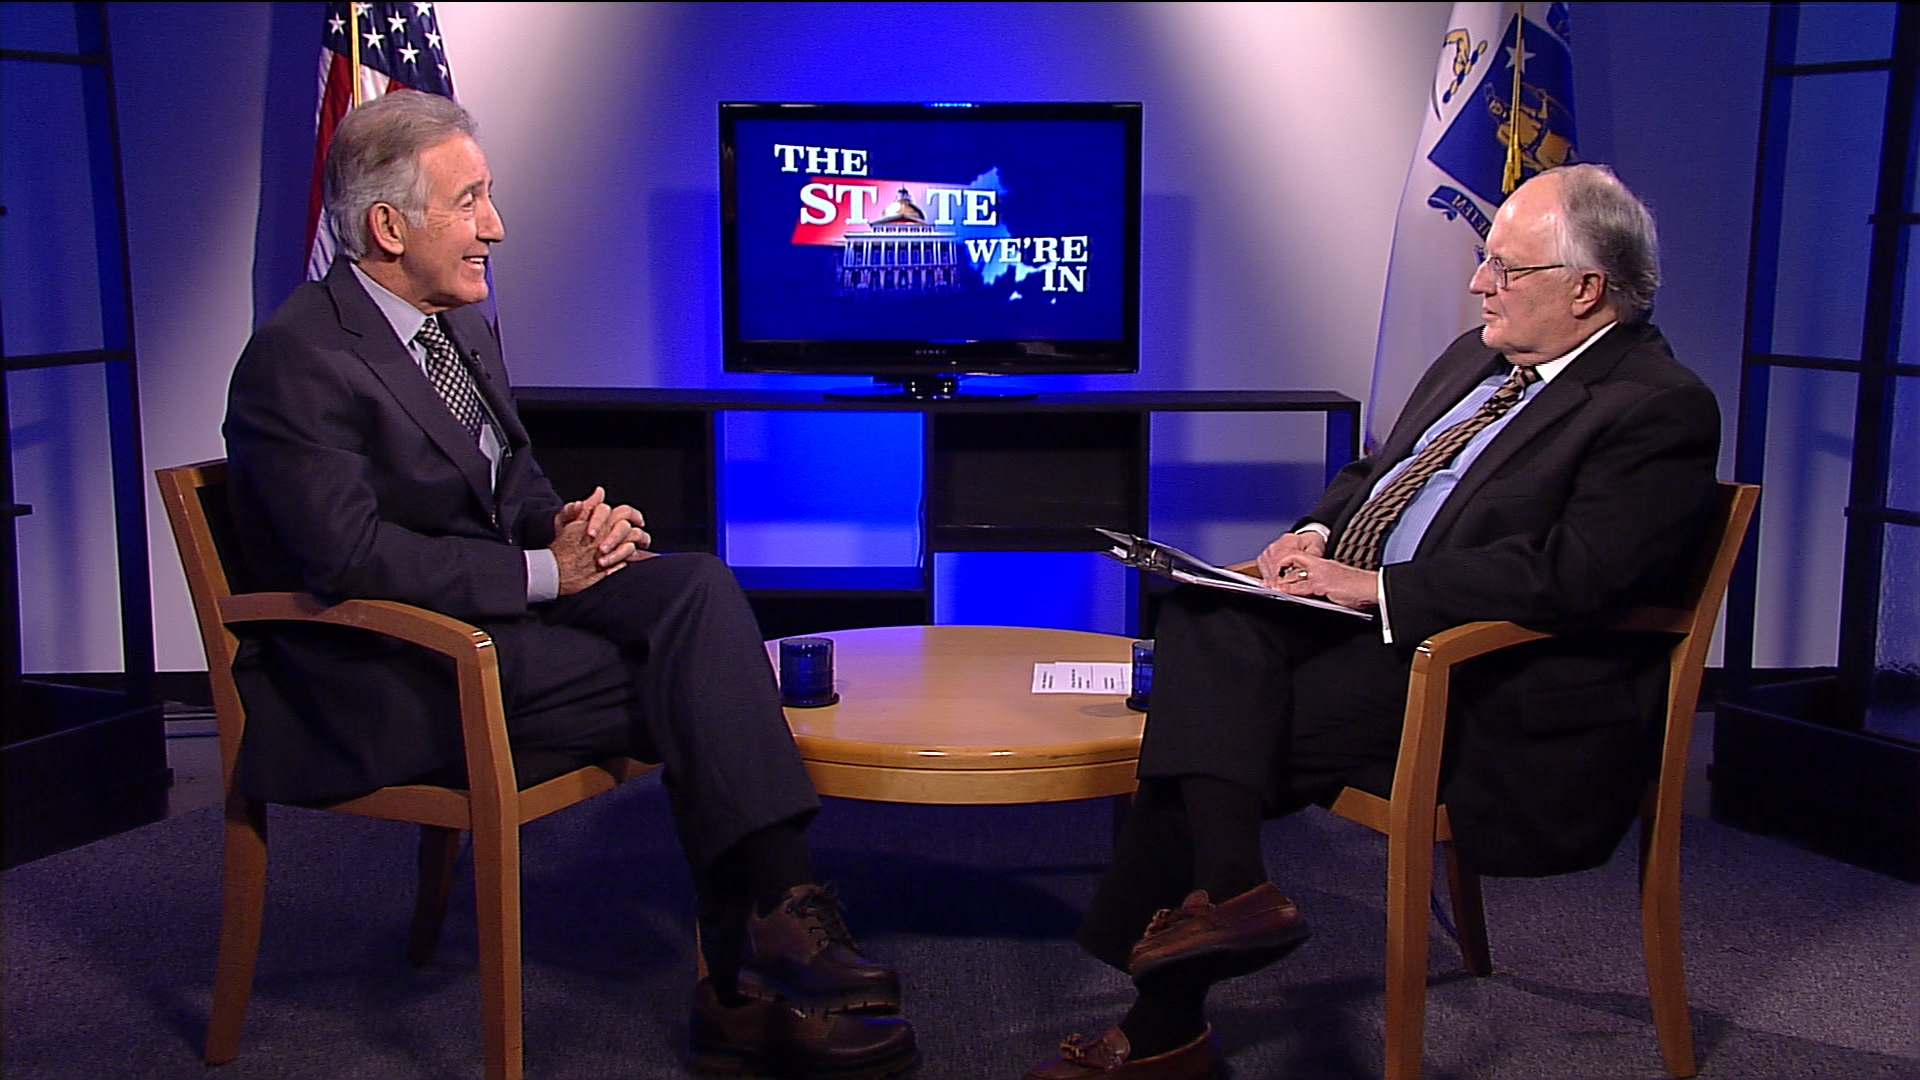 U.S. Representative Richard Neal discusses his election as Ranking Minority Member of the powerful House Ways and Means Committee.